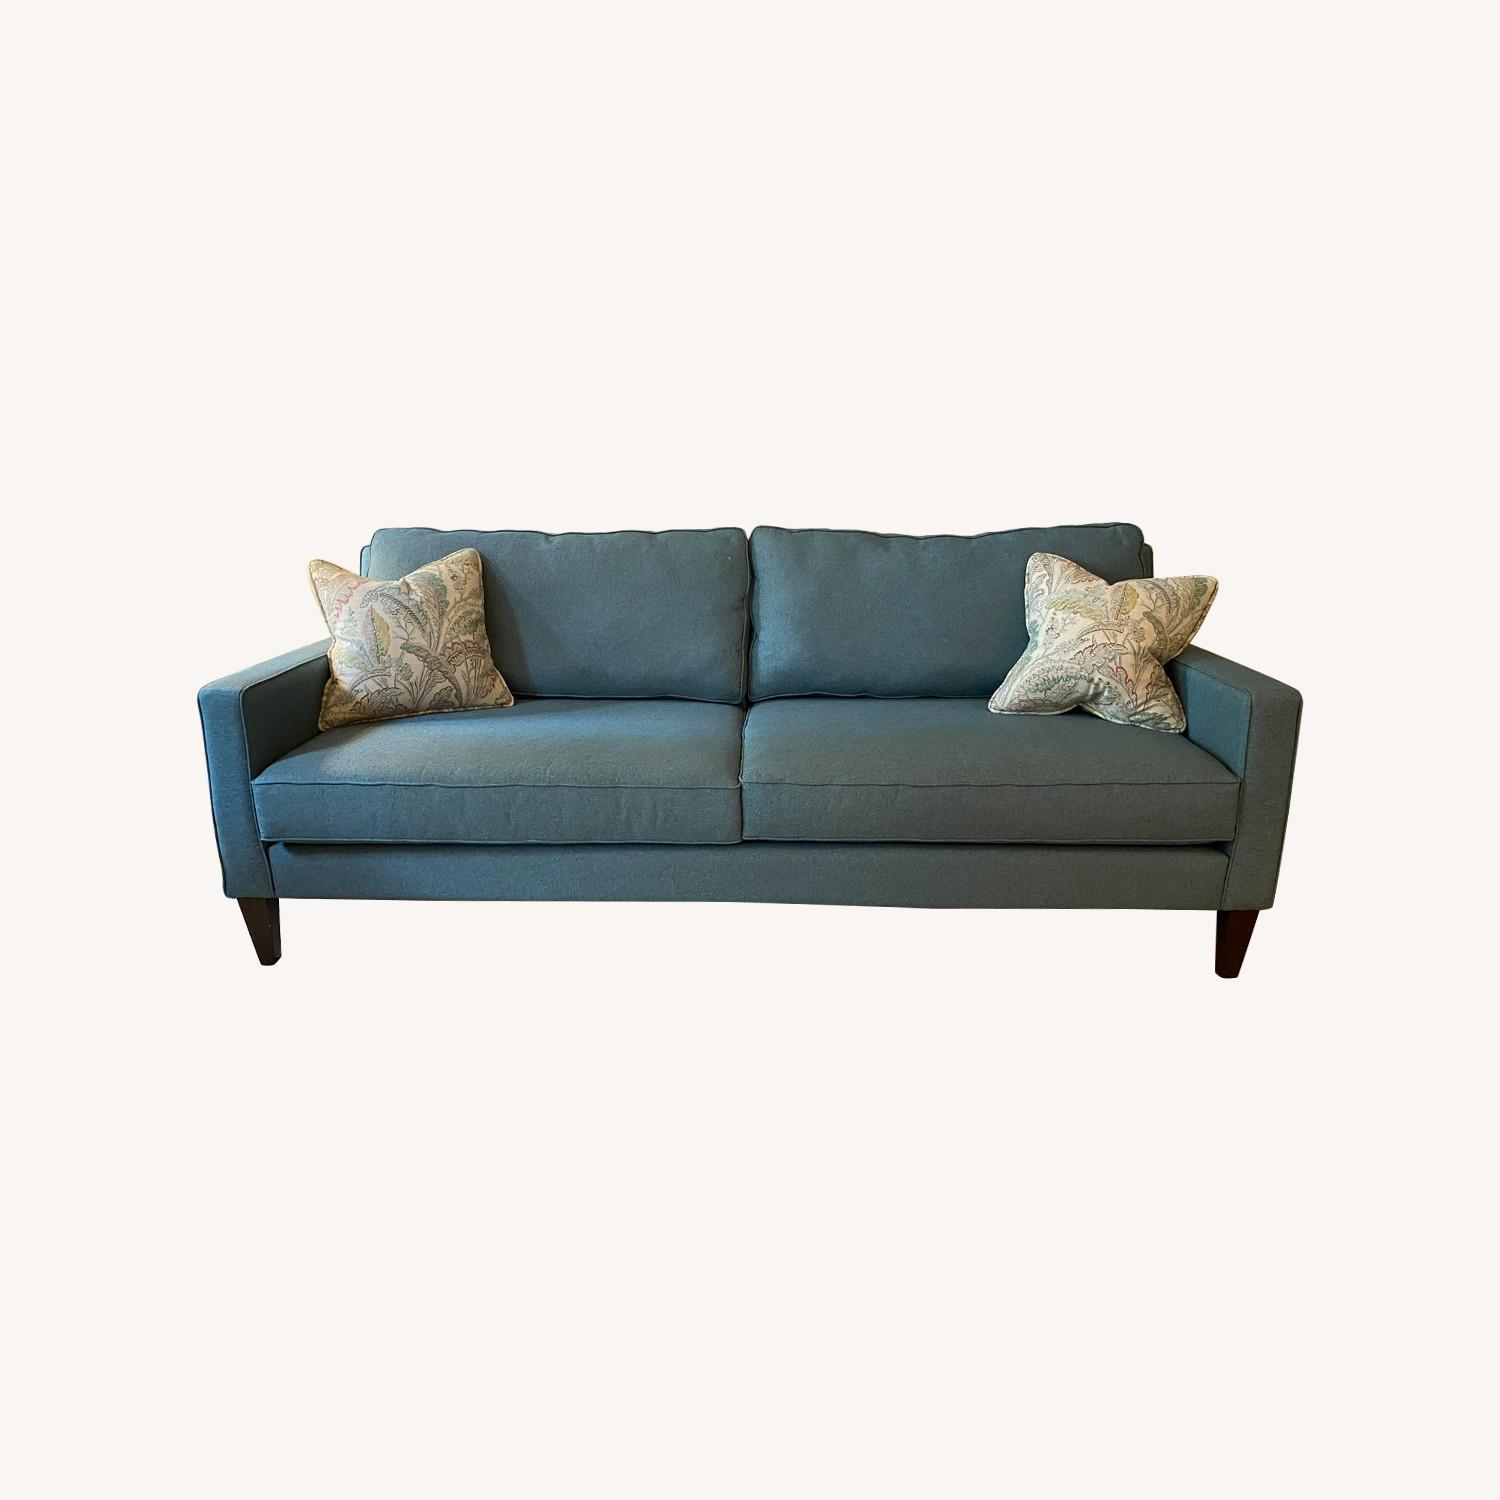 Joybird Levi Sofa in Aqua Essence - image-0